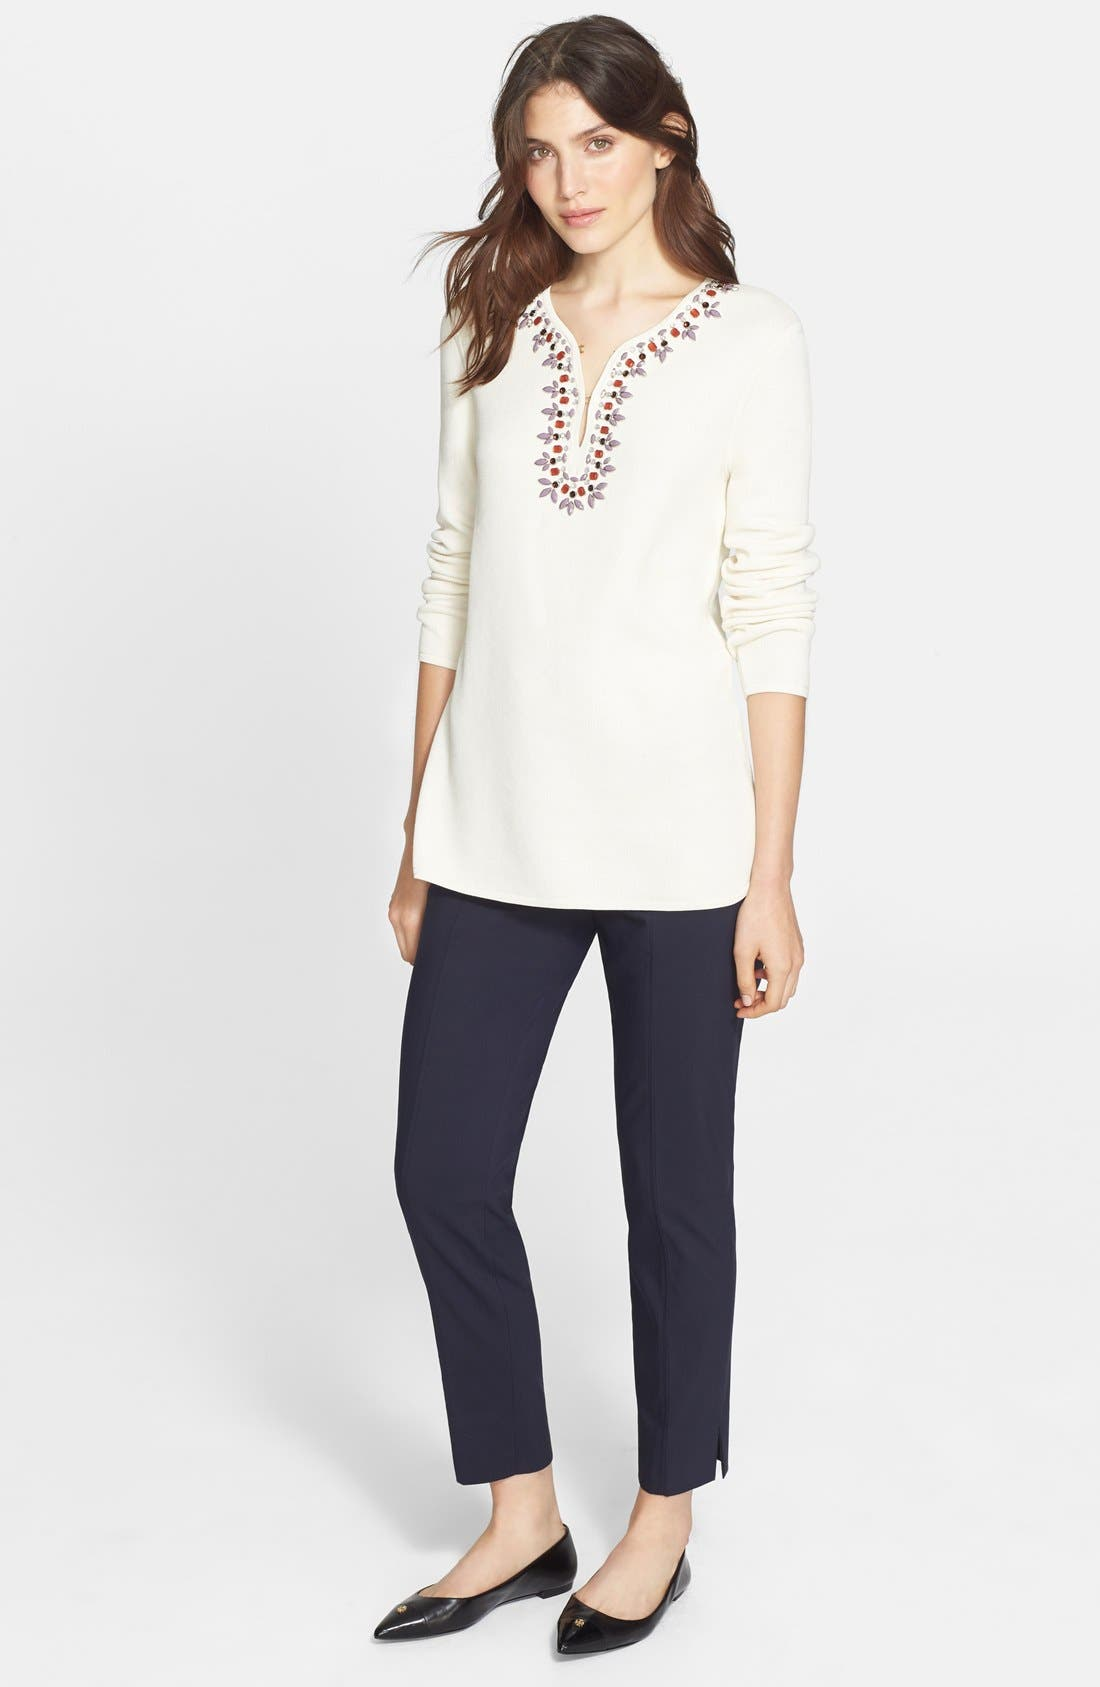 TORY BURCH,                             Embellished Tunic,                             Alternate thumbnail 3, color,                             907